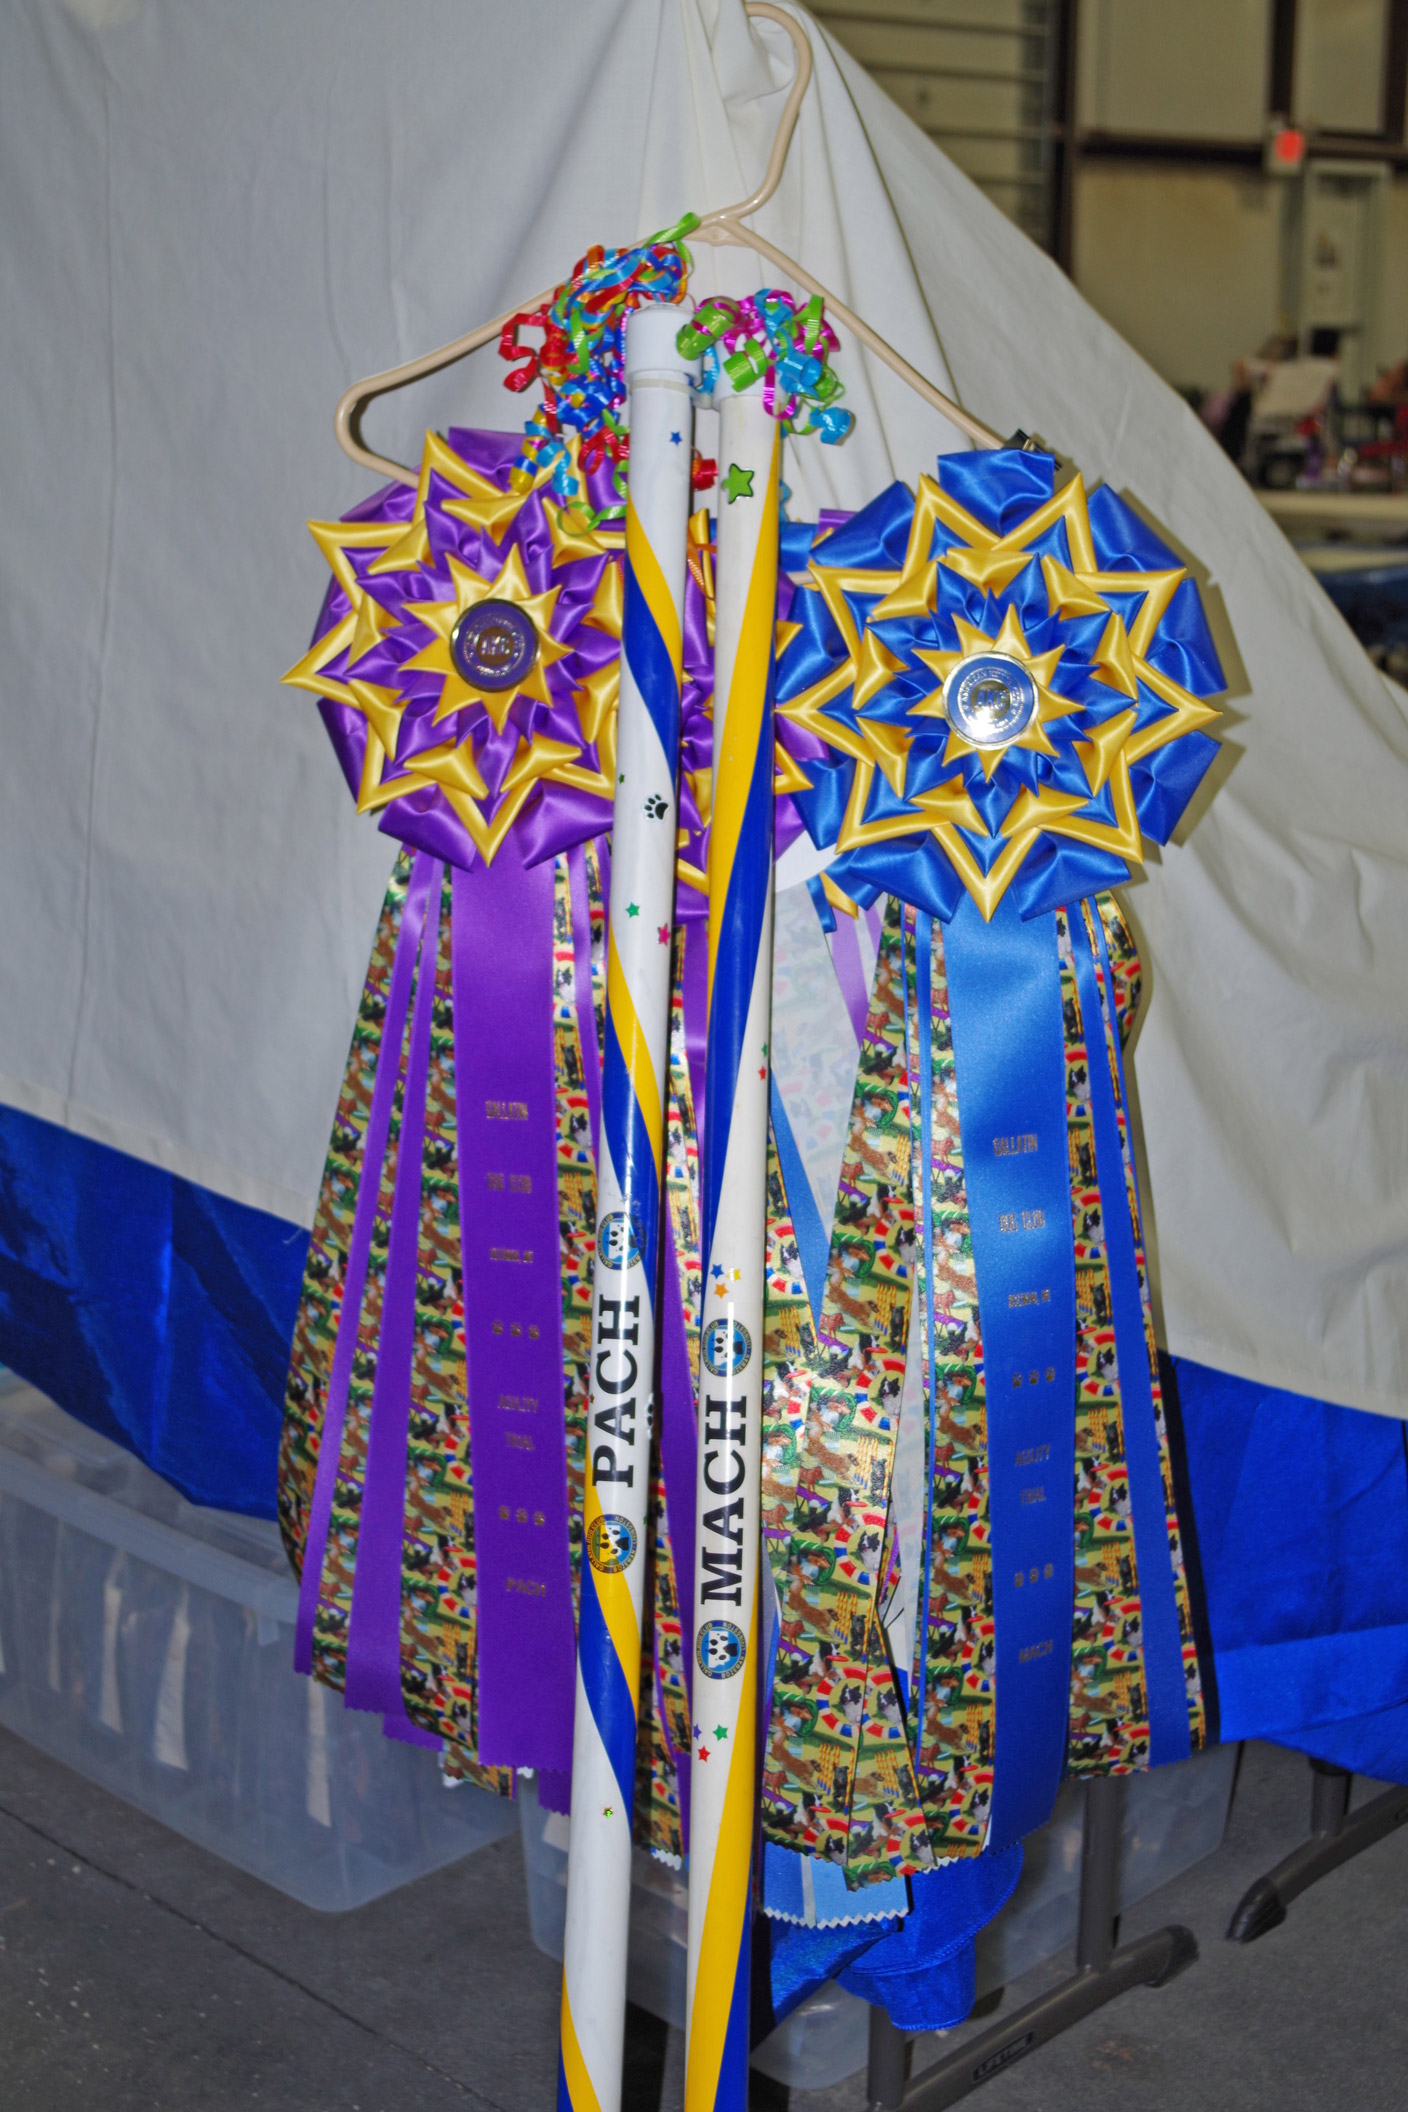 Gallatin Dog Training Club's MACH and PACH ribbons and bars